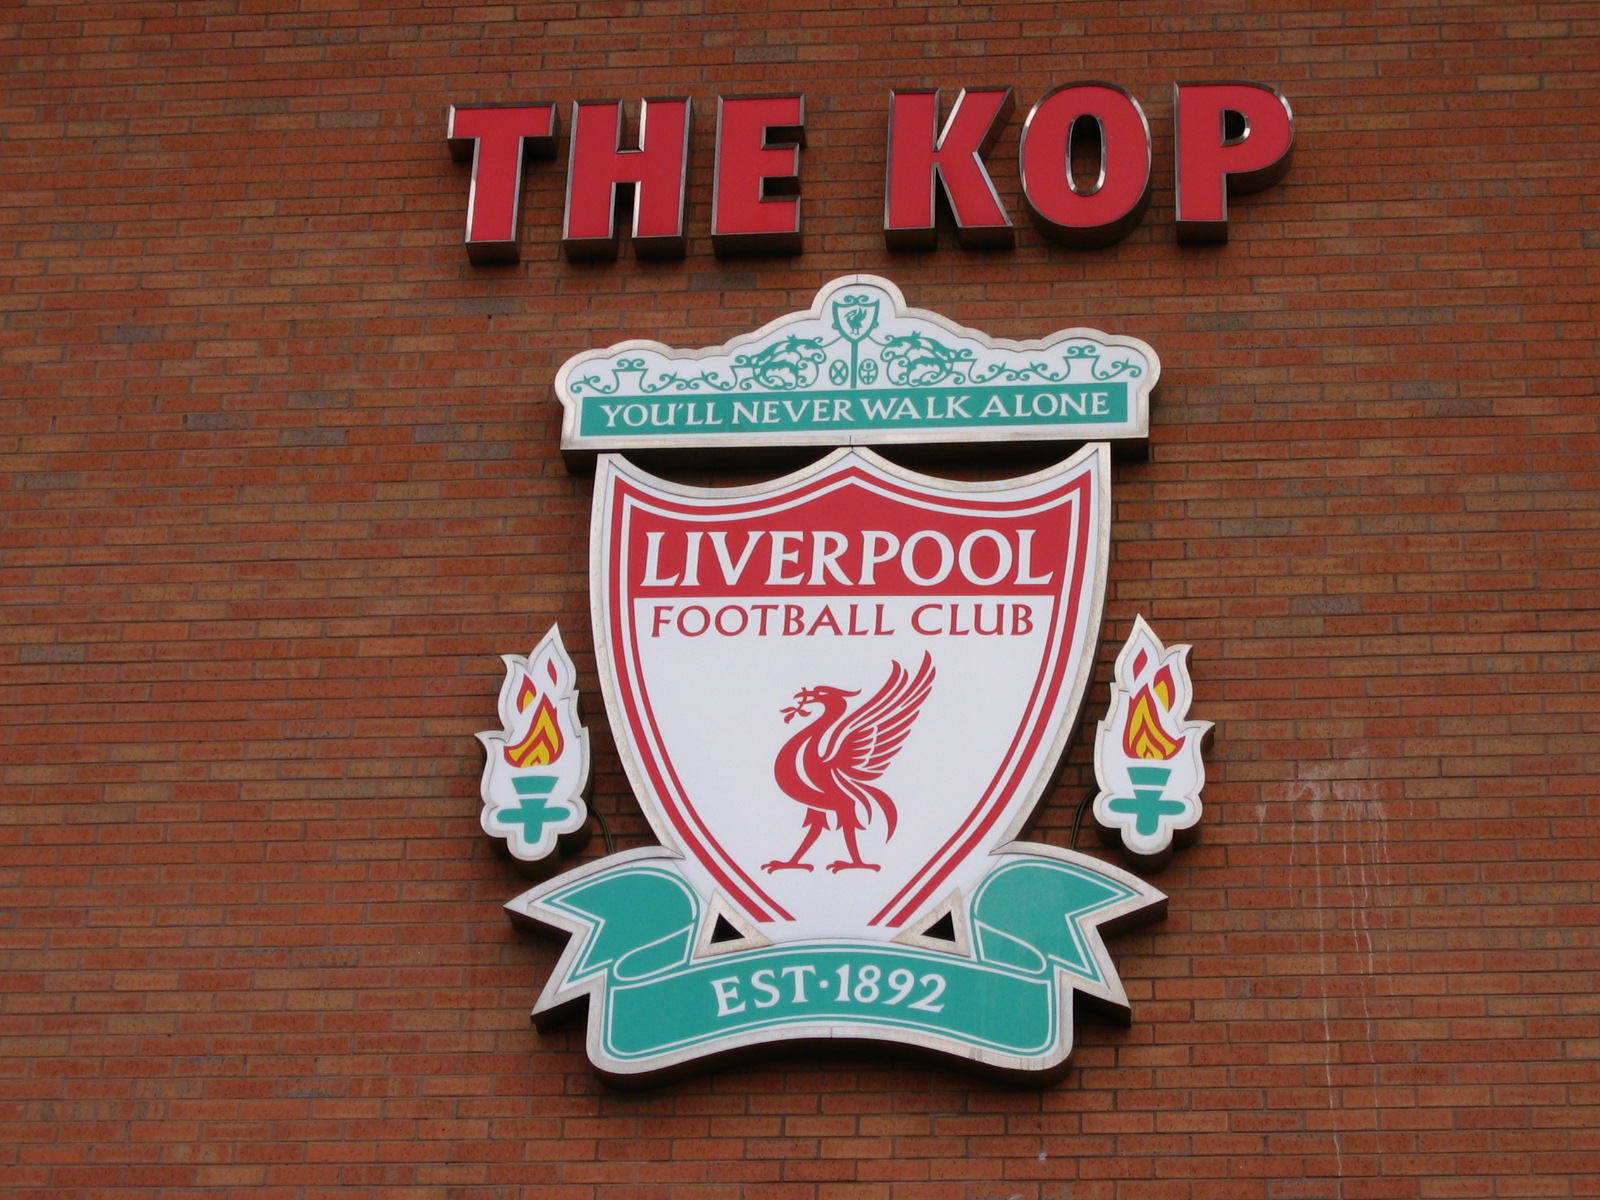 Liverpool FC could be closer being sold after restraining order was lifted.